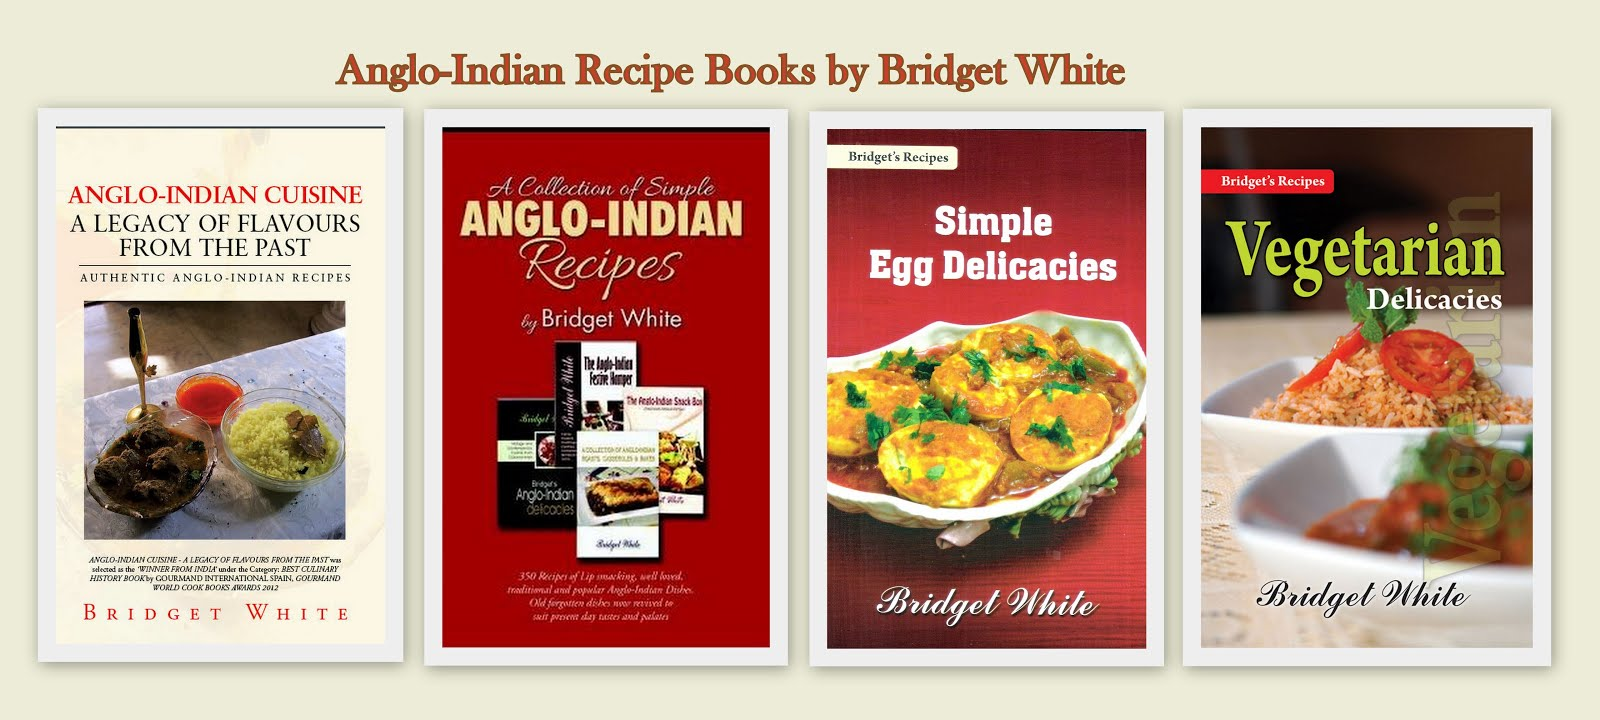 Bridget White Anglo-Indian Recipe Books